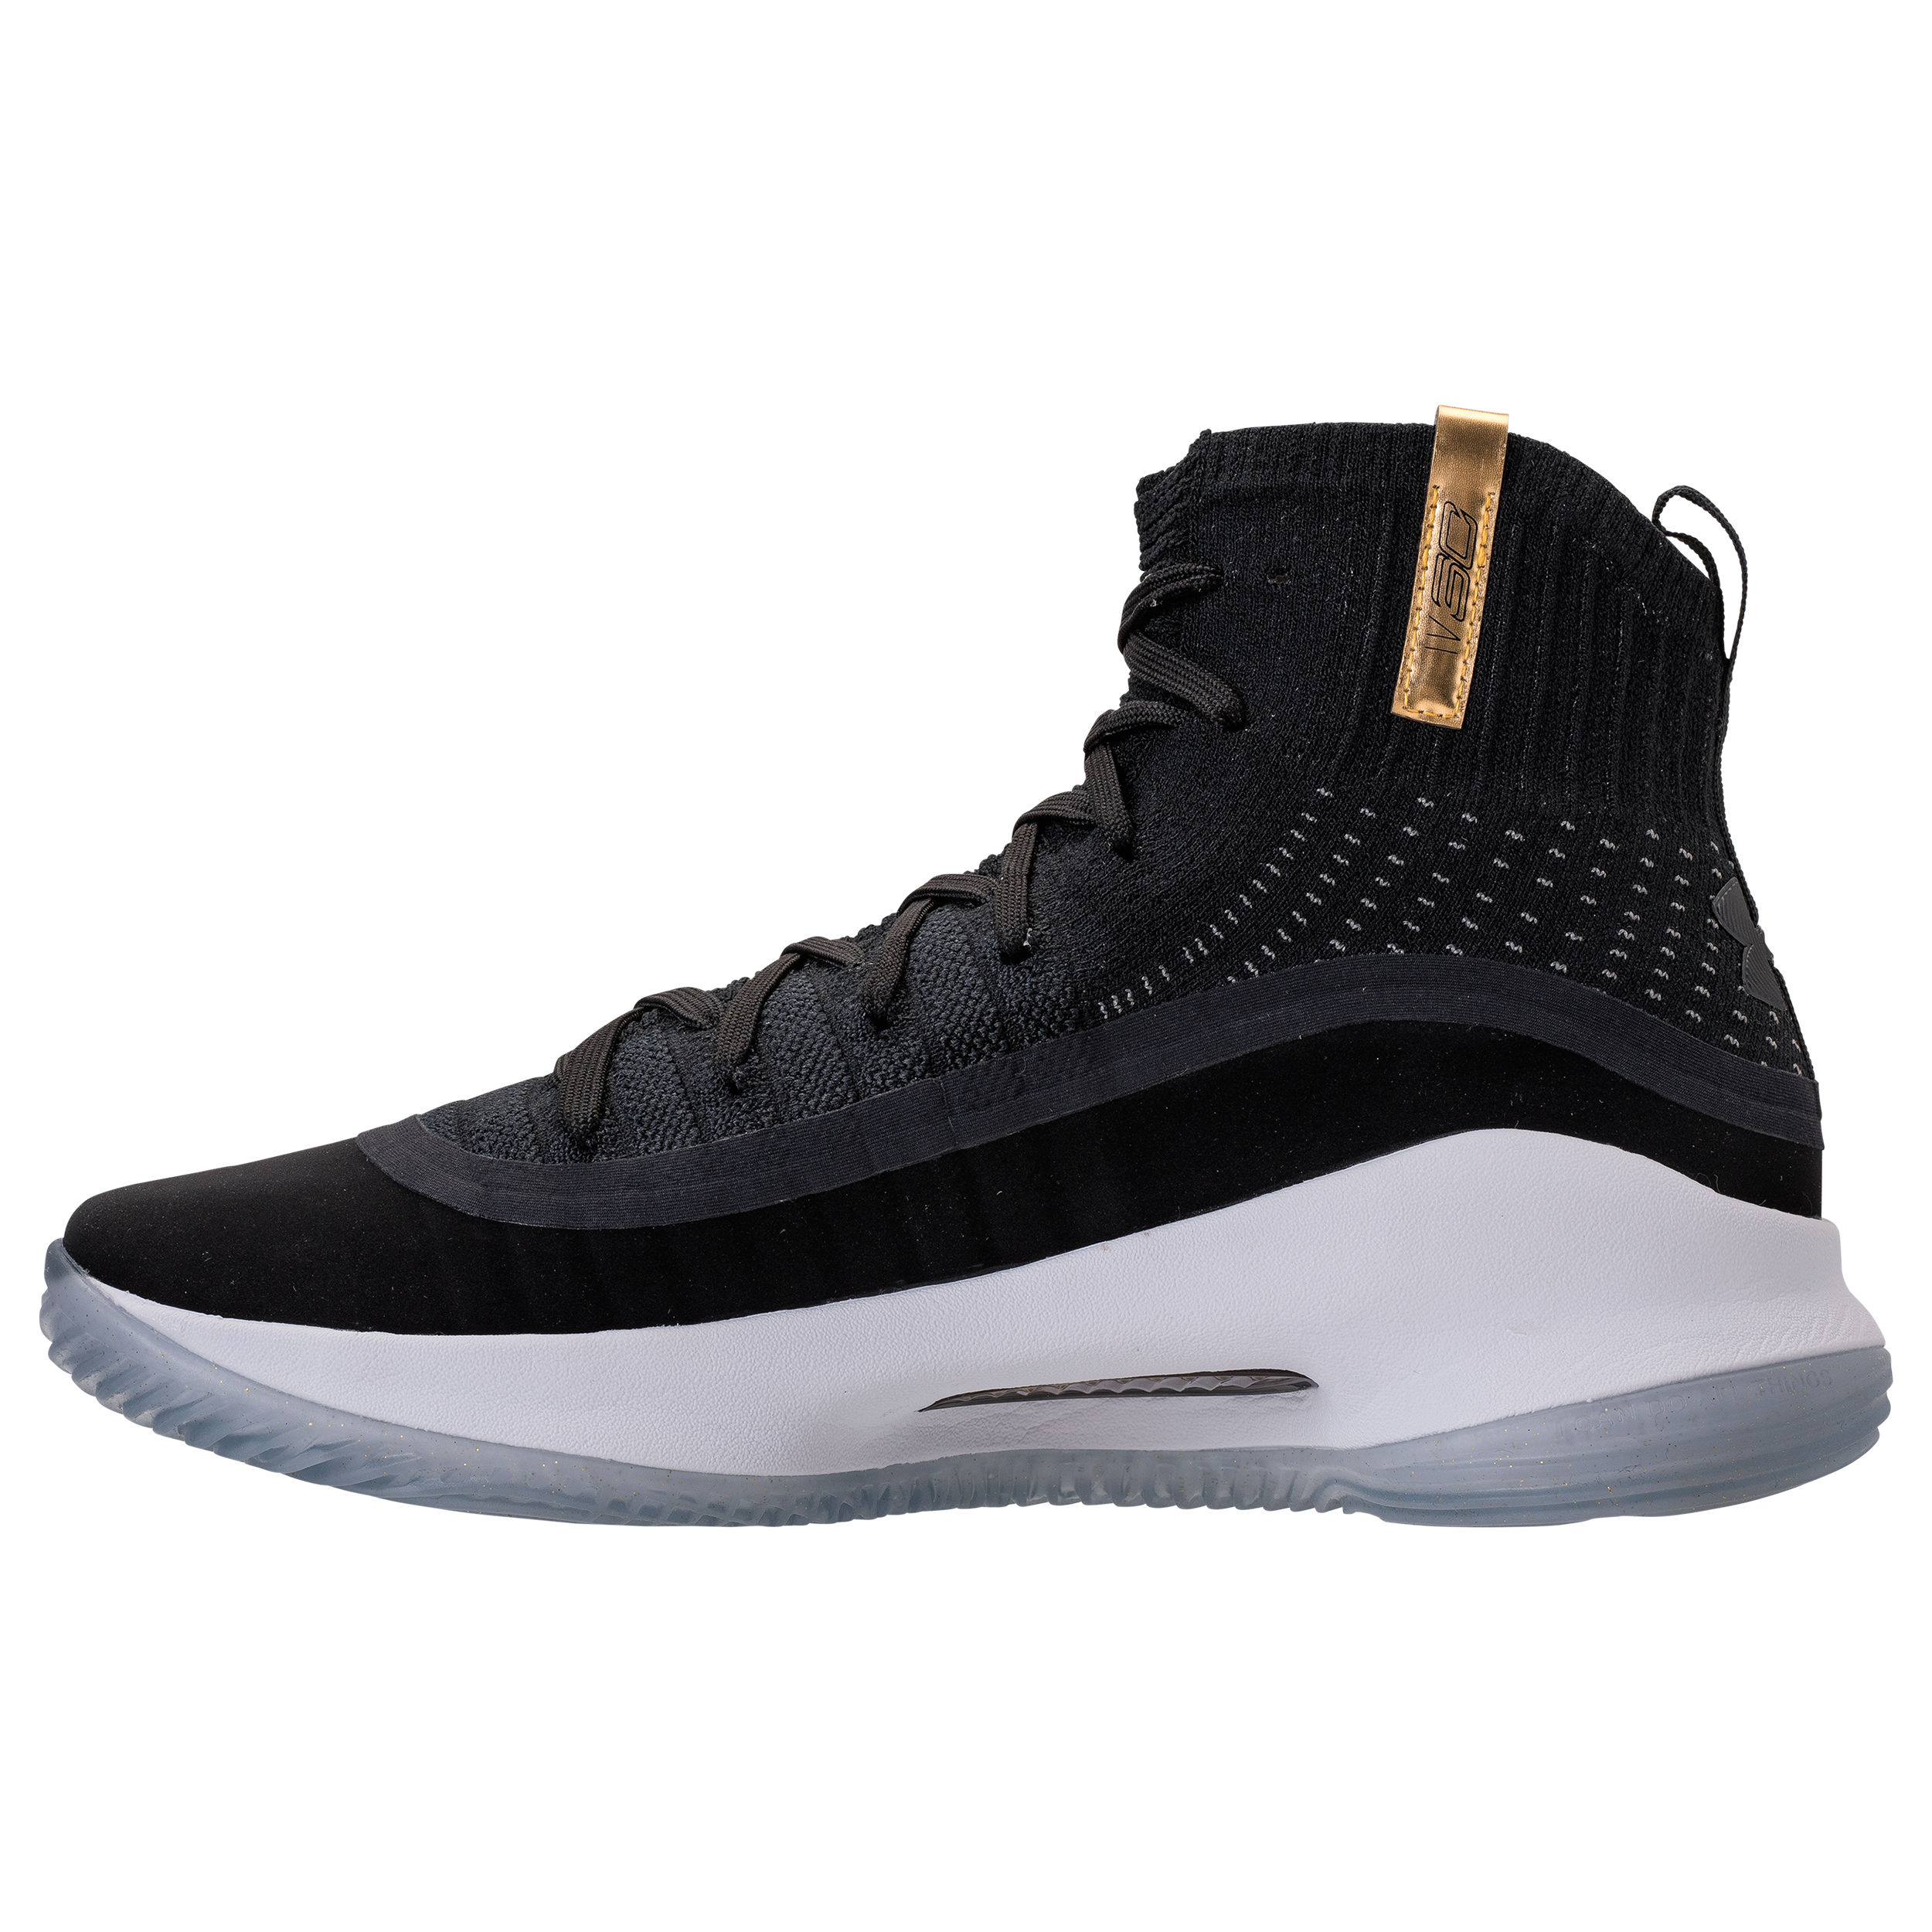 2cdbdaad0d34 Under armour curry 4 black gold 3 - WearTesters